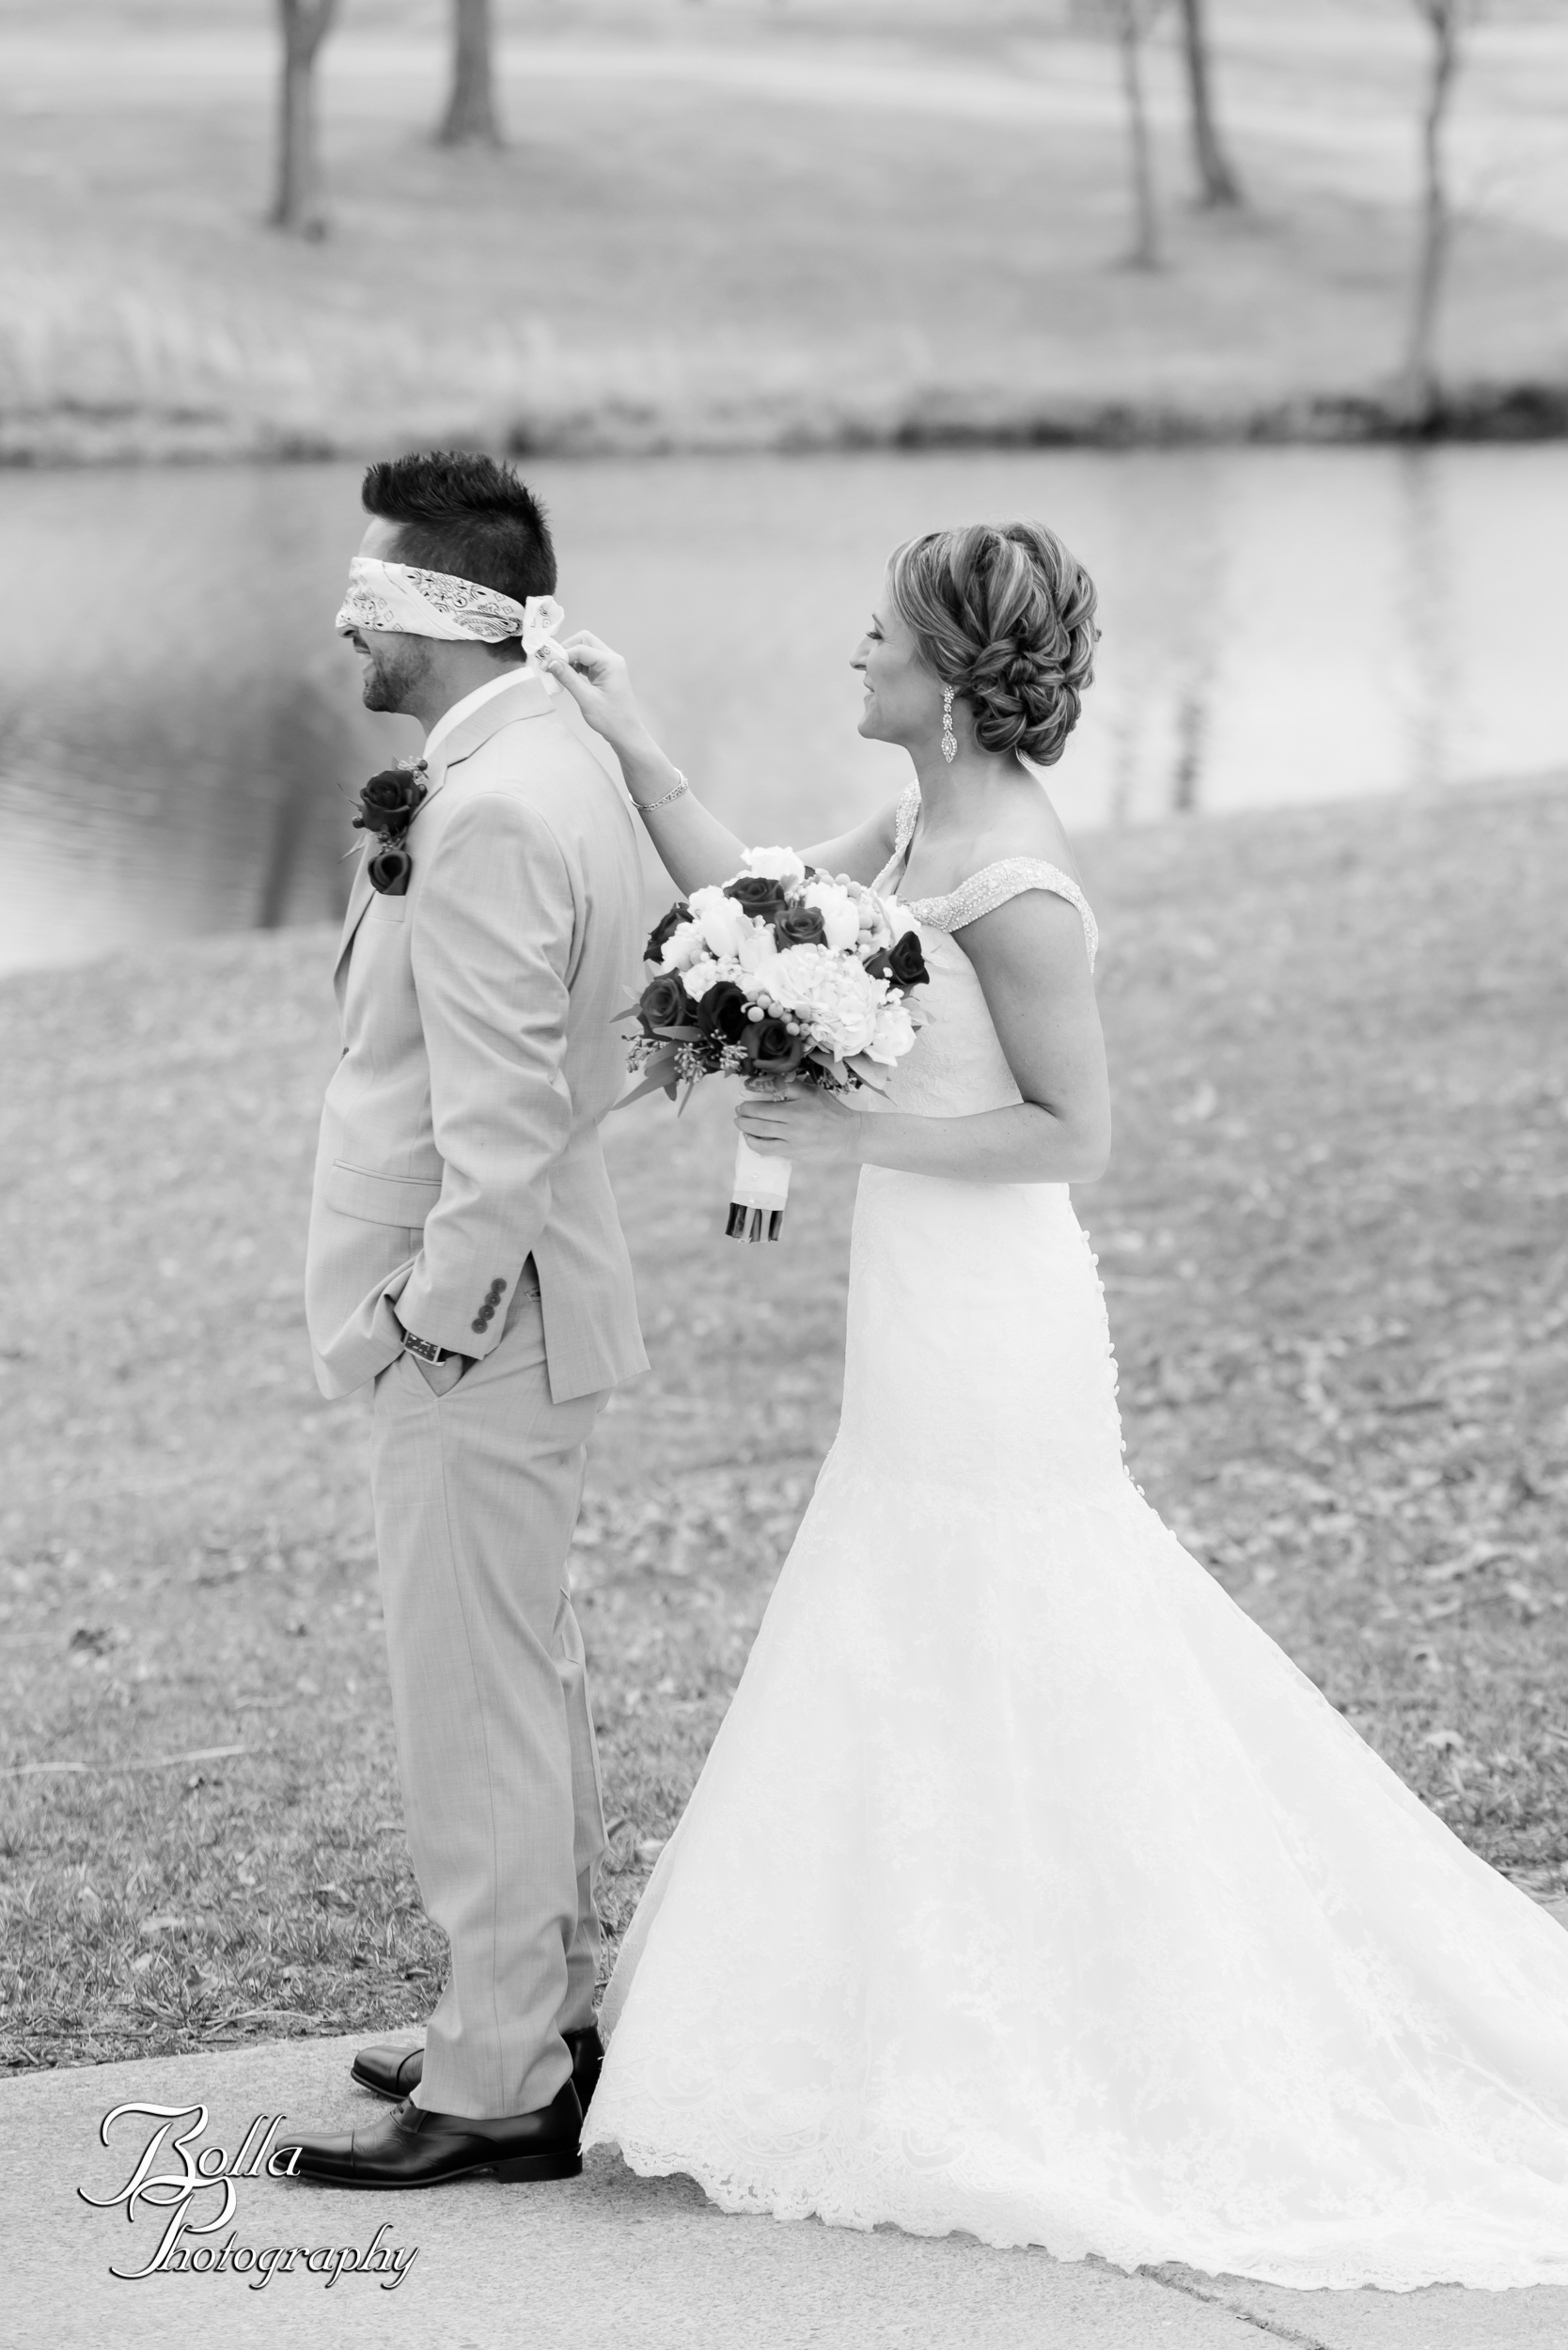 Bolla_photography_edwardsville_wedding_photographer_st_louis_weddings_highland_Allen_Warren_winter_red-0099.jpg